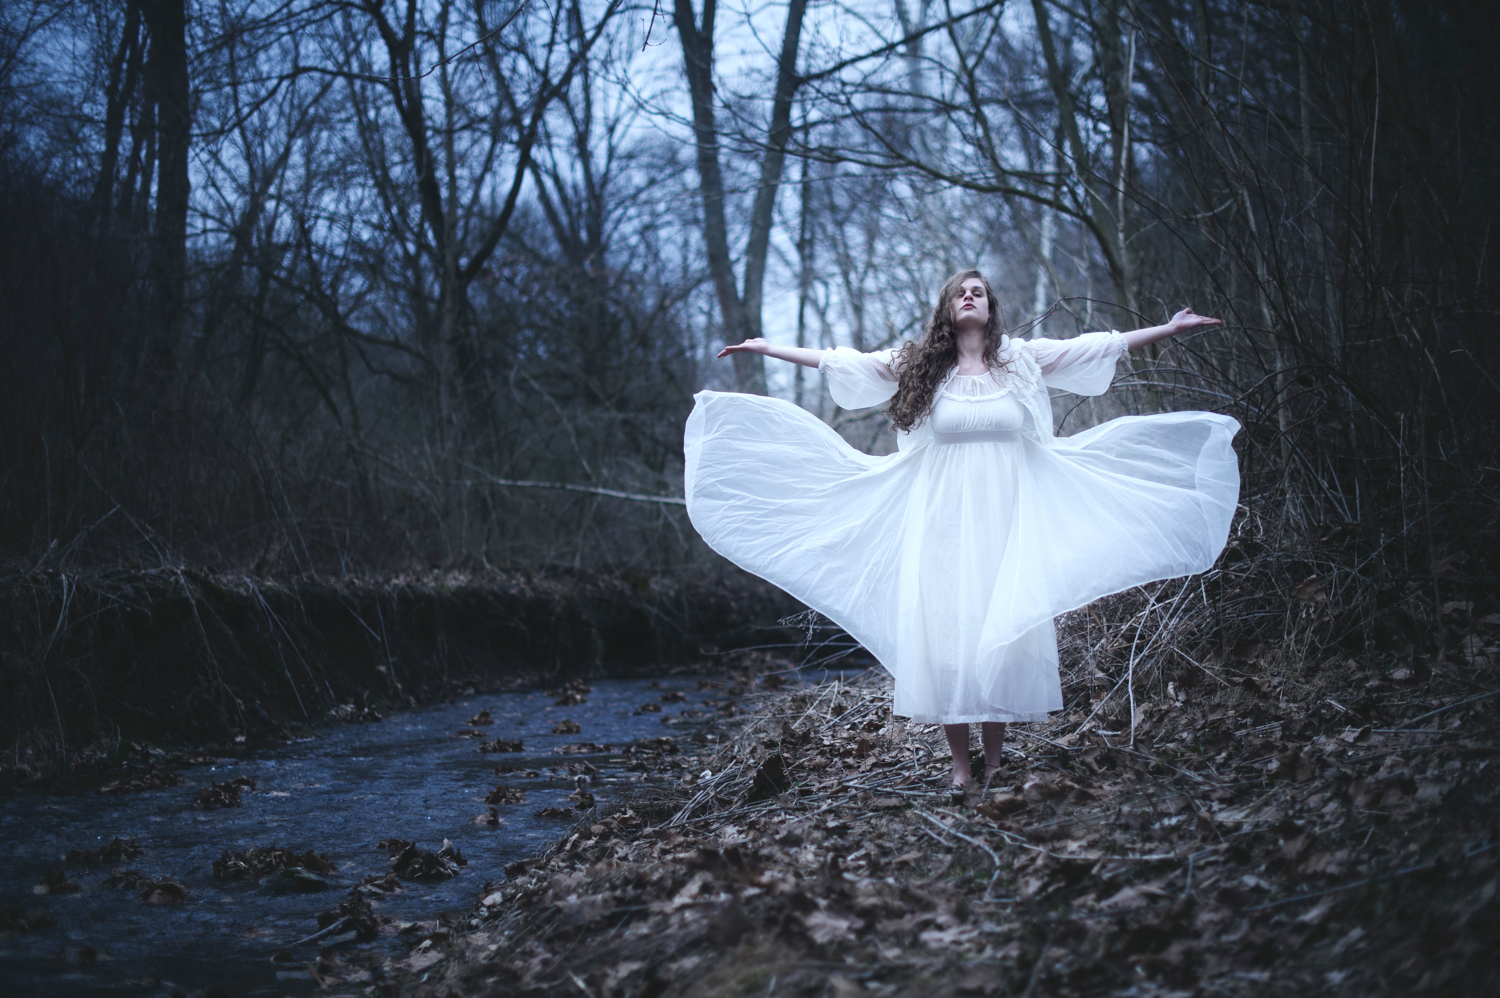 The Dawning - Ethereal Portraiture by Kelsie Taylor Photography